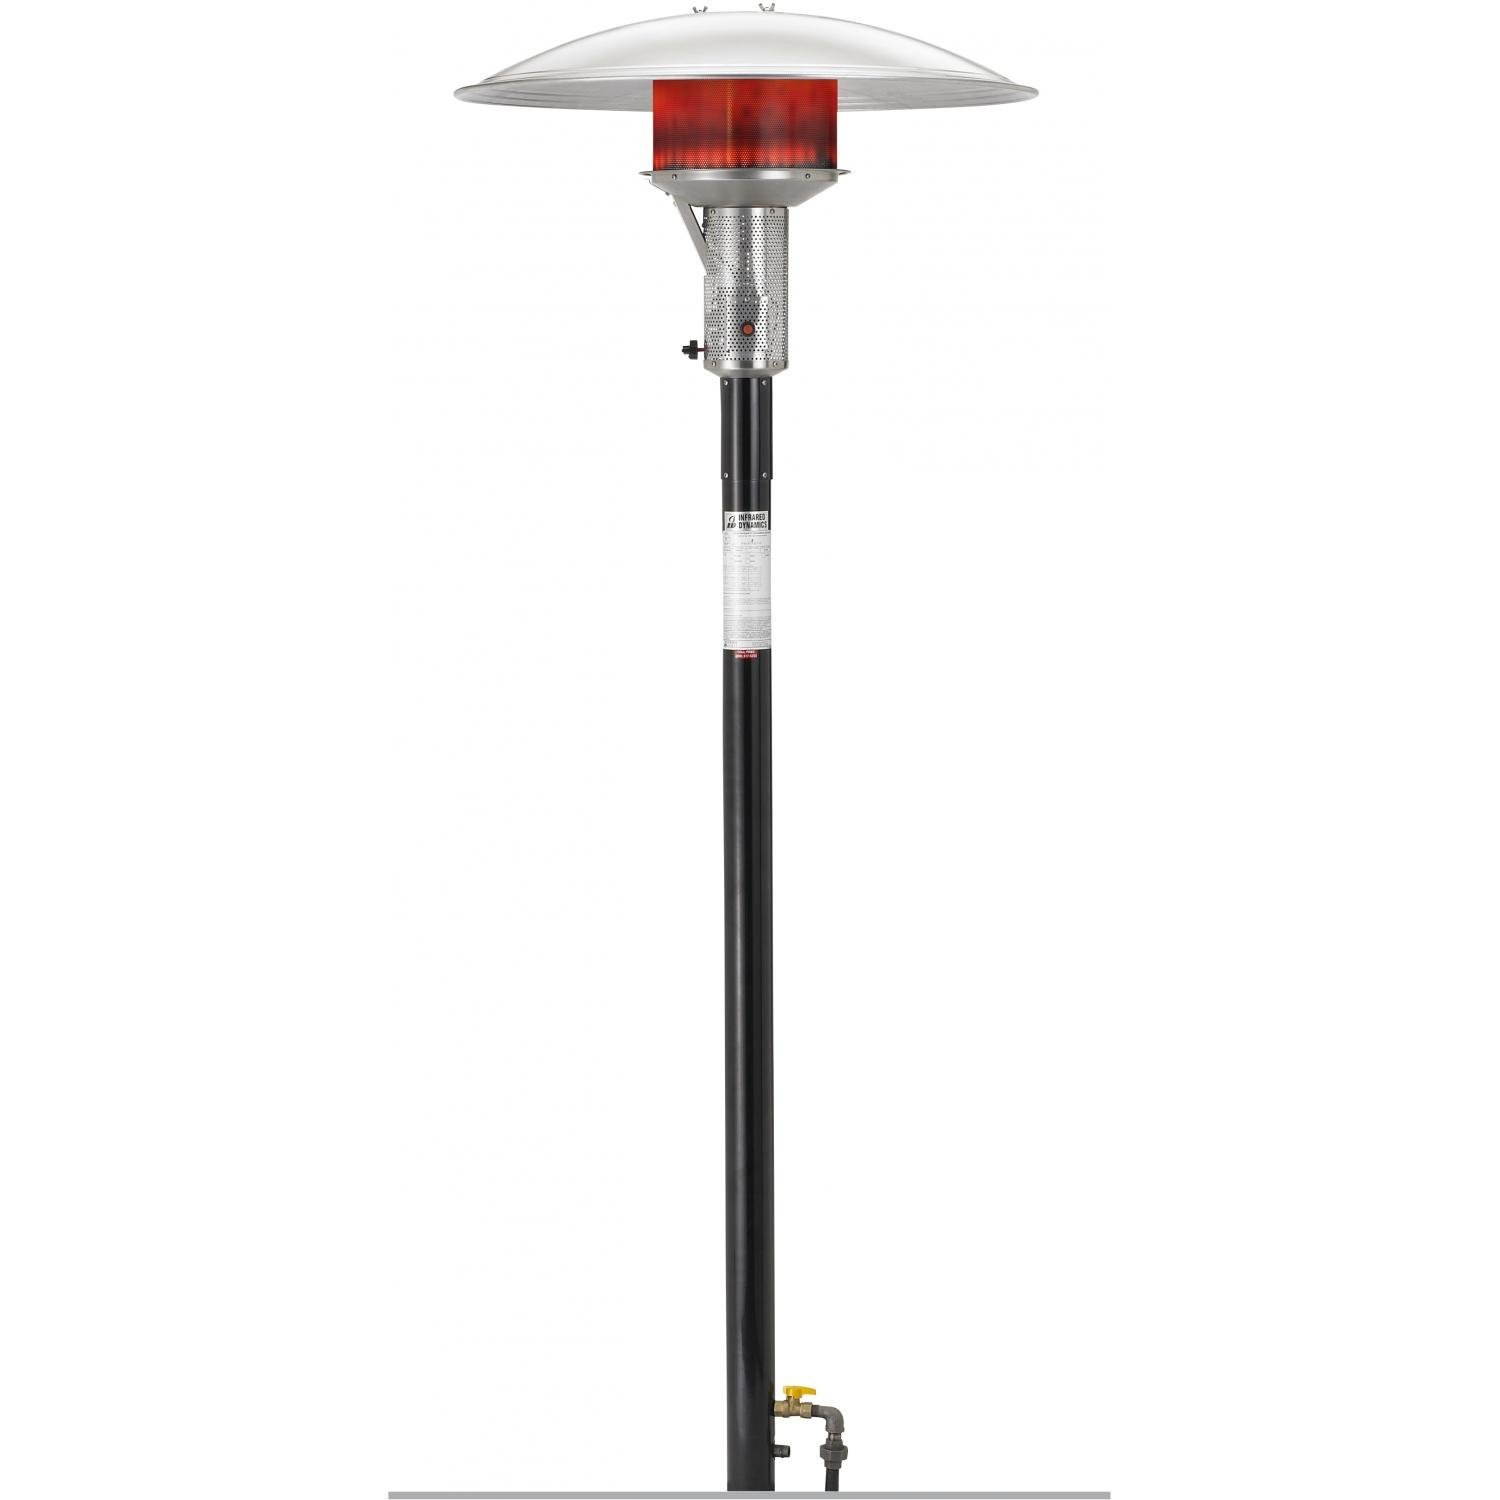 Sunglo 50000 Btu Natural Gas Post-mount Patio Heater - Black